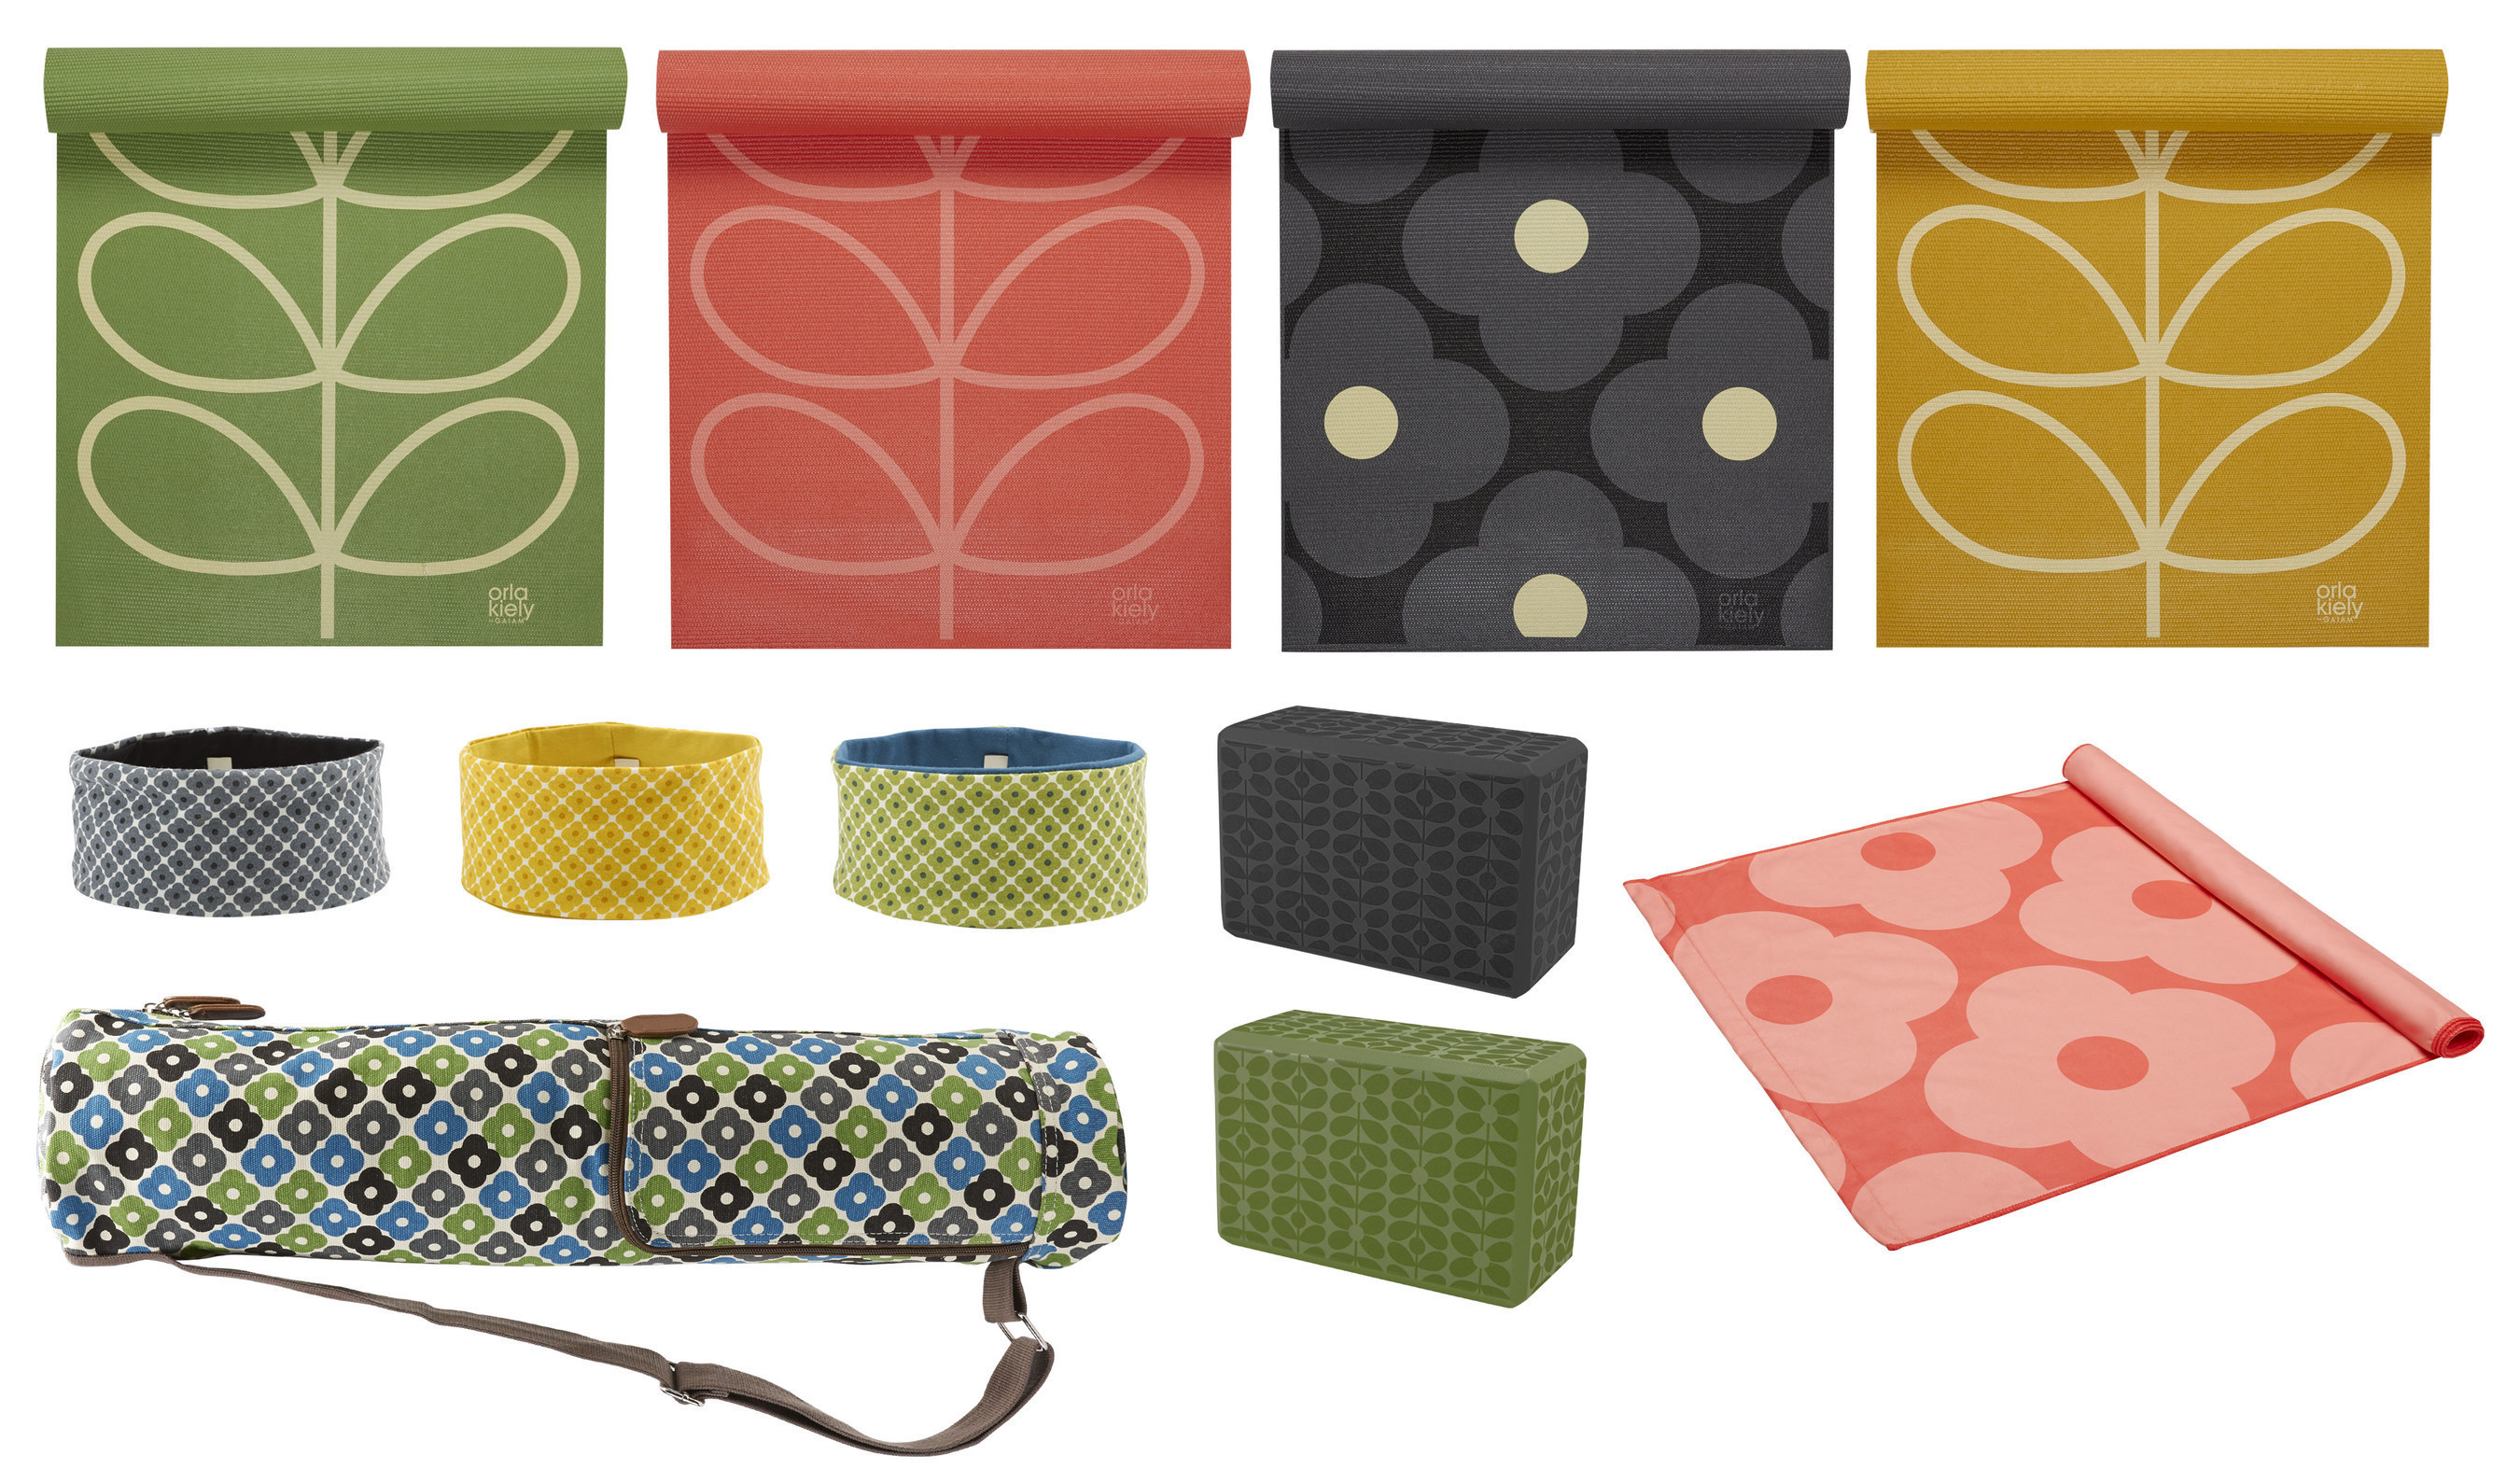 Gaiam Partners With Orla Kiely To Launch Limited Edition